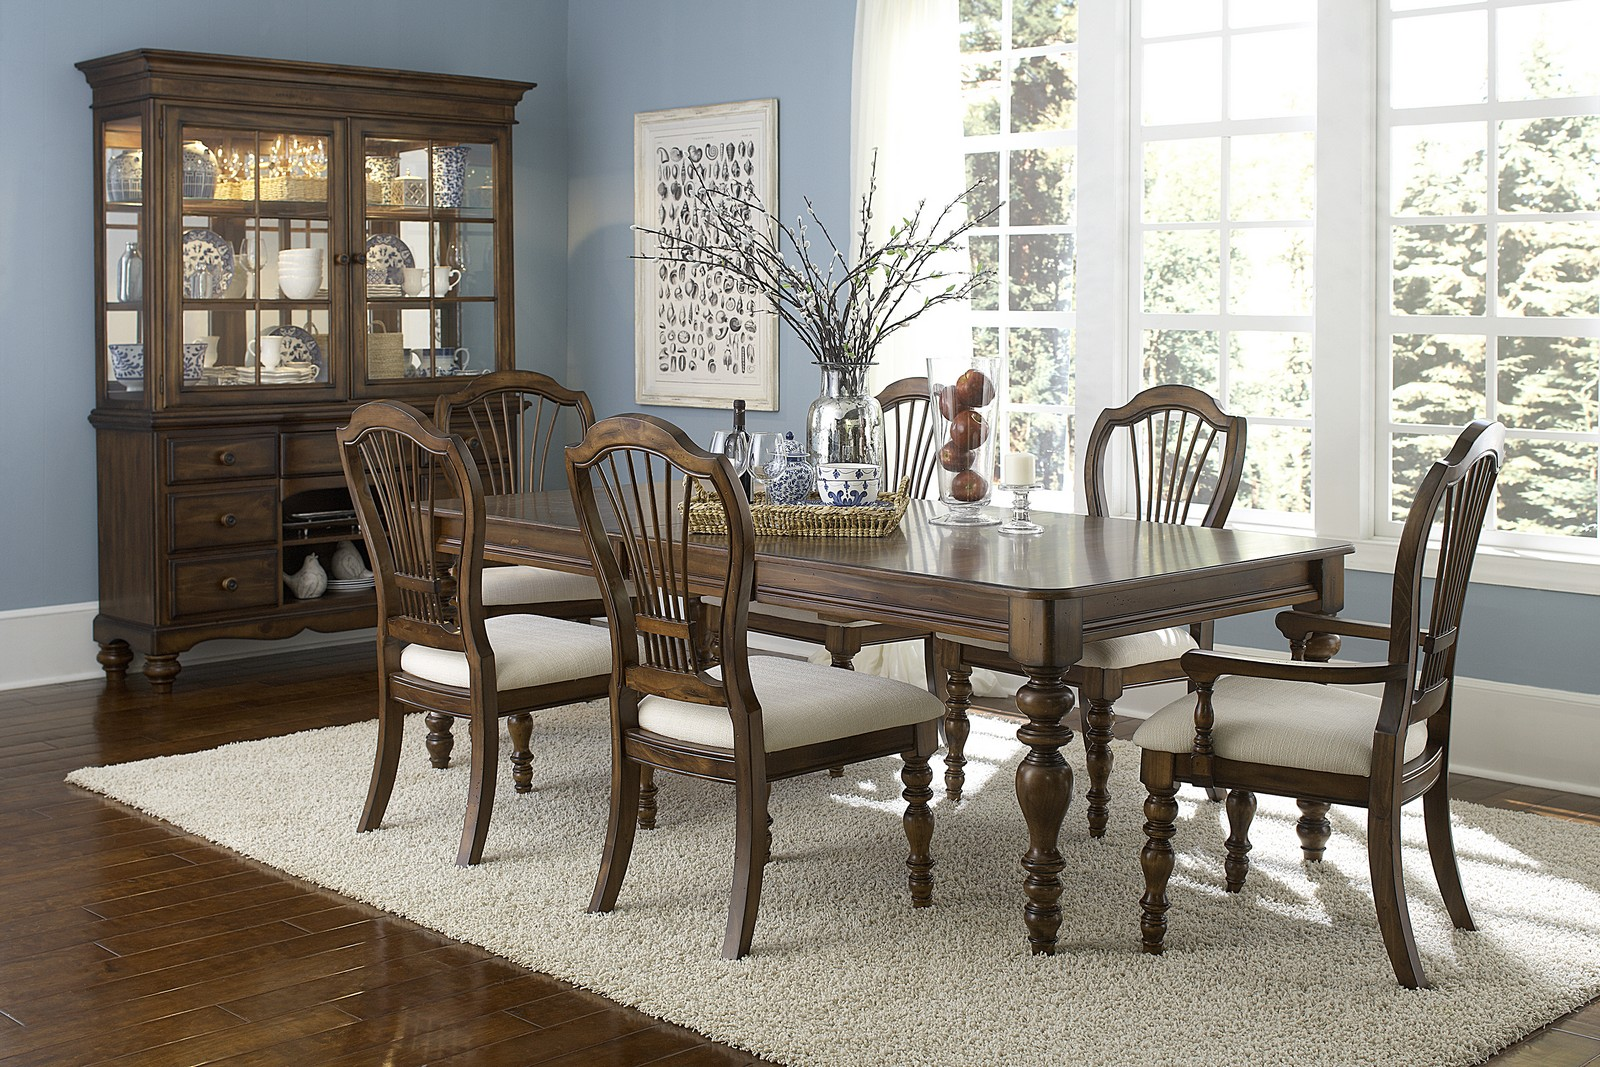 Hilale Pine Island 7 Pc Dining Set With Wheat Back Side Chairs And Arm